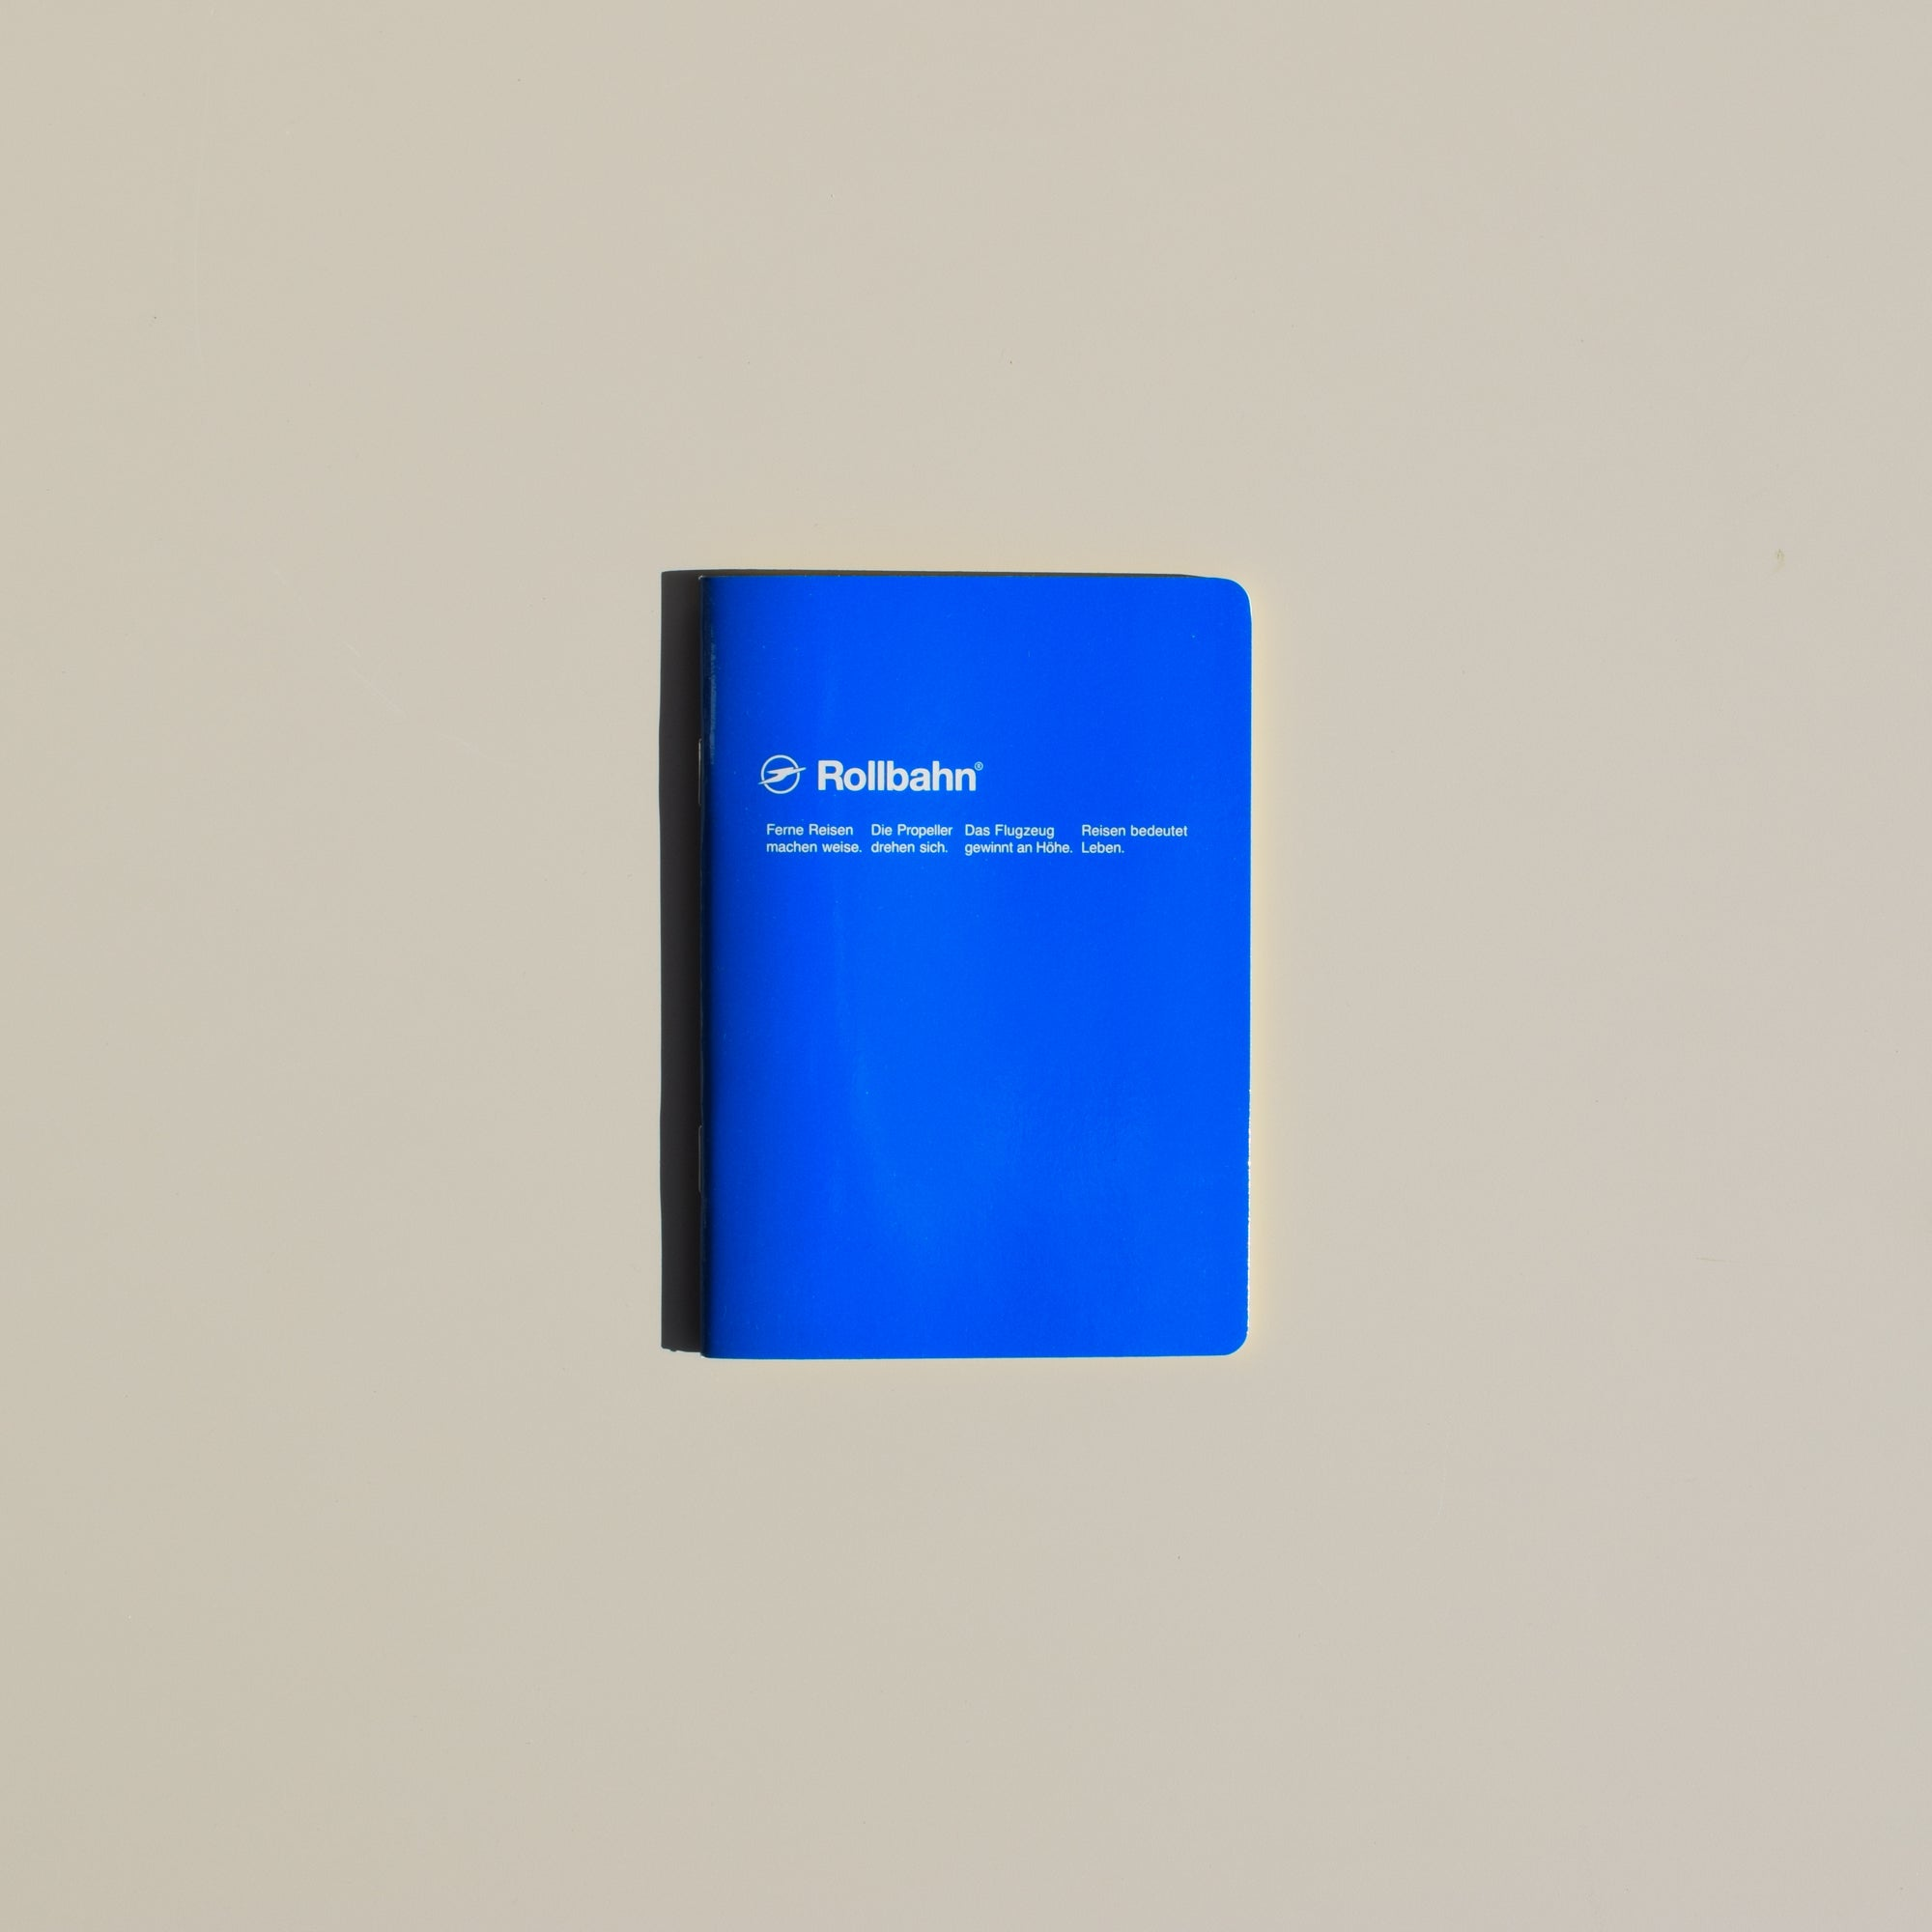 The Rollbahn 'Note' Notebook (A6 Pocket) from Delfonics in blue.